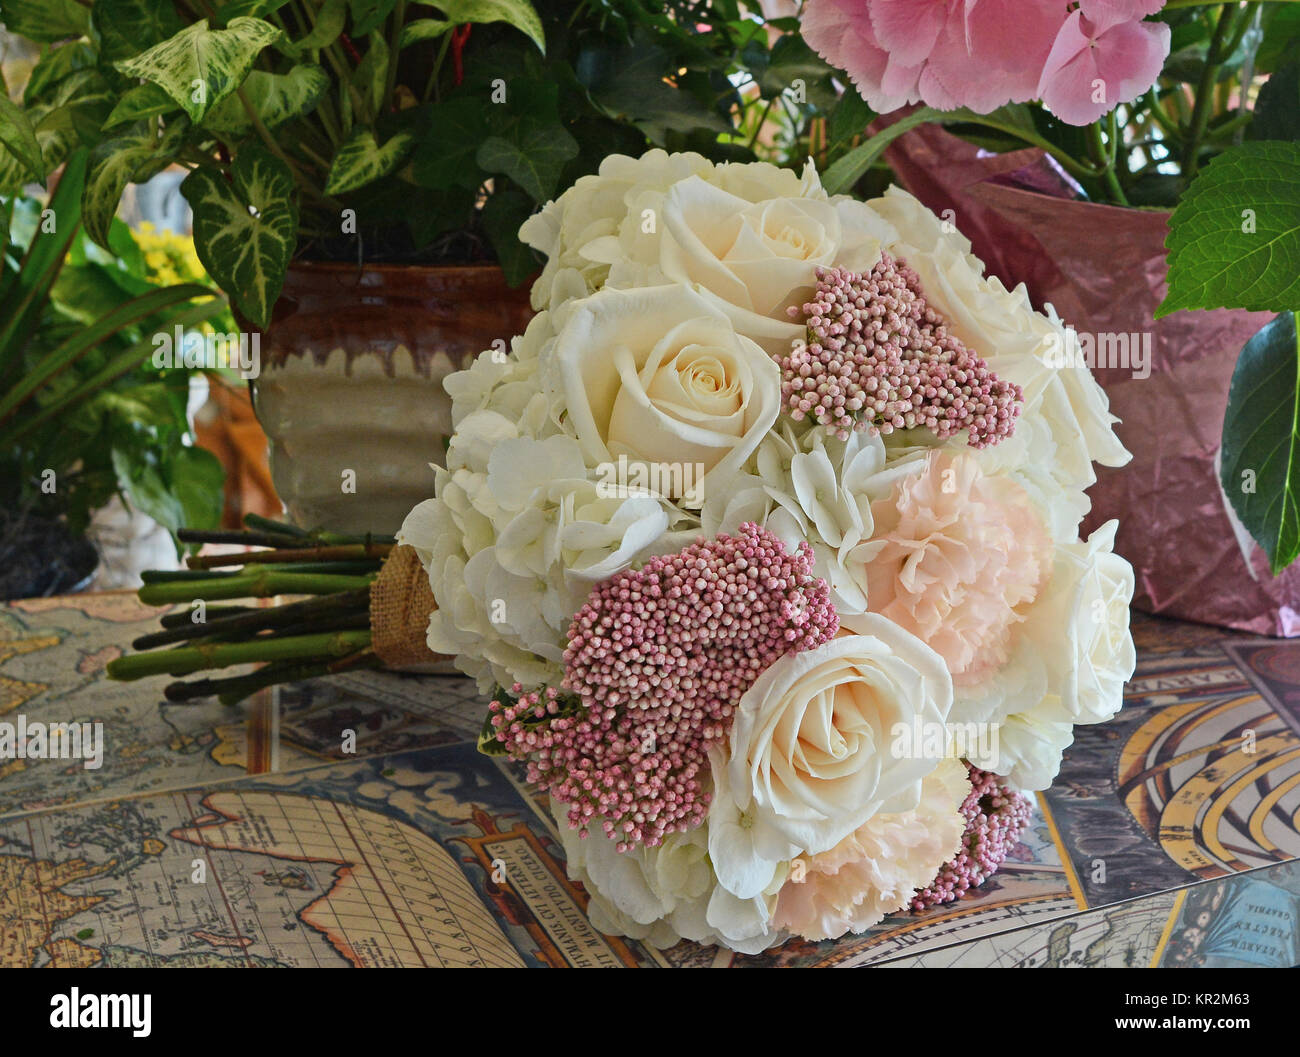 Photo of a soft pastel nosegay bridal bouquet with white roses stock photo of a soft pastel nosegay bridal bouquet with white roses hydrangea blush carnations and pink rice flowers beautiful for a garden wedding mightylinksfo